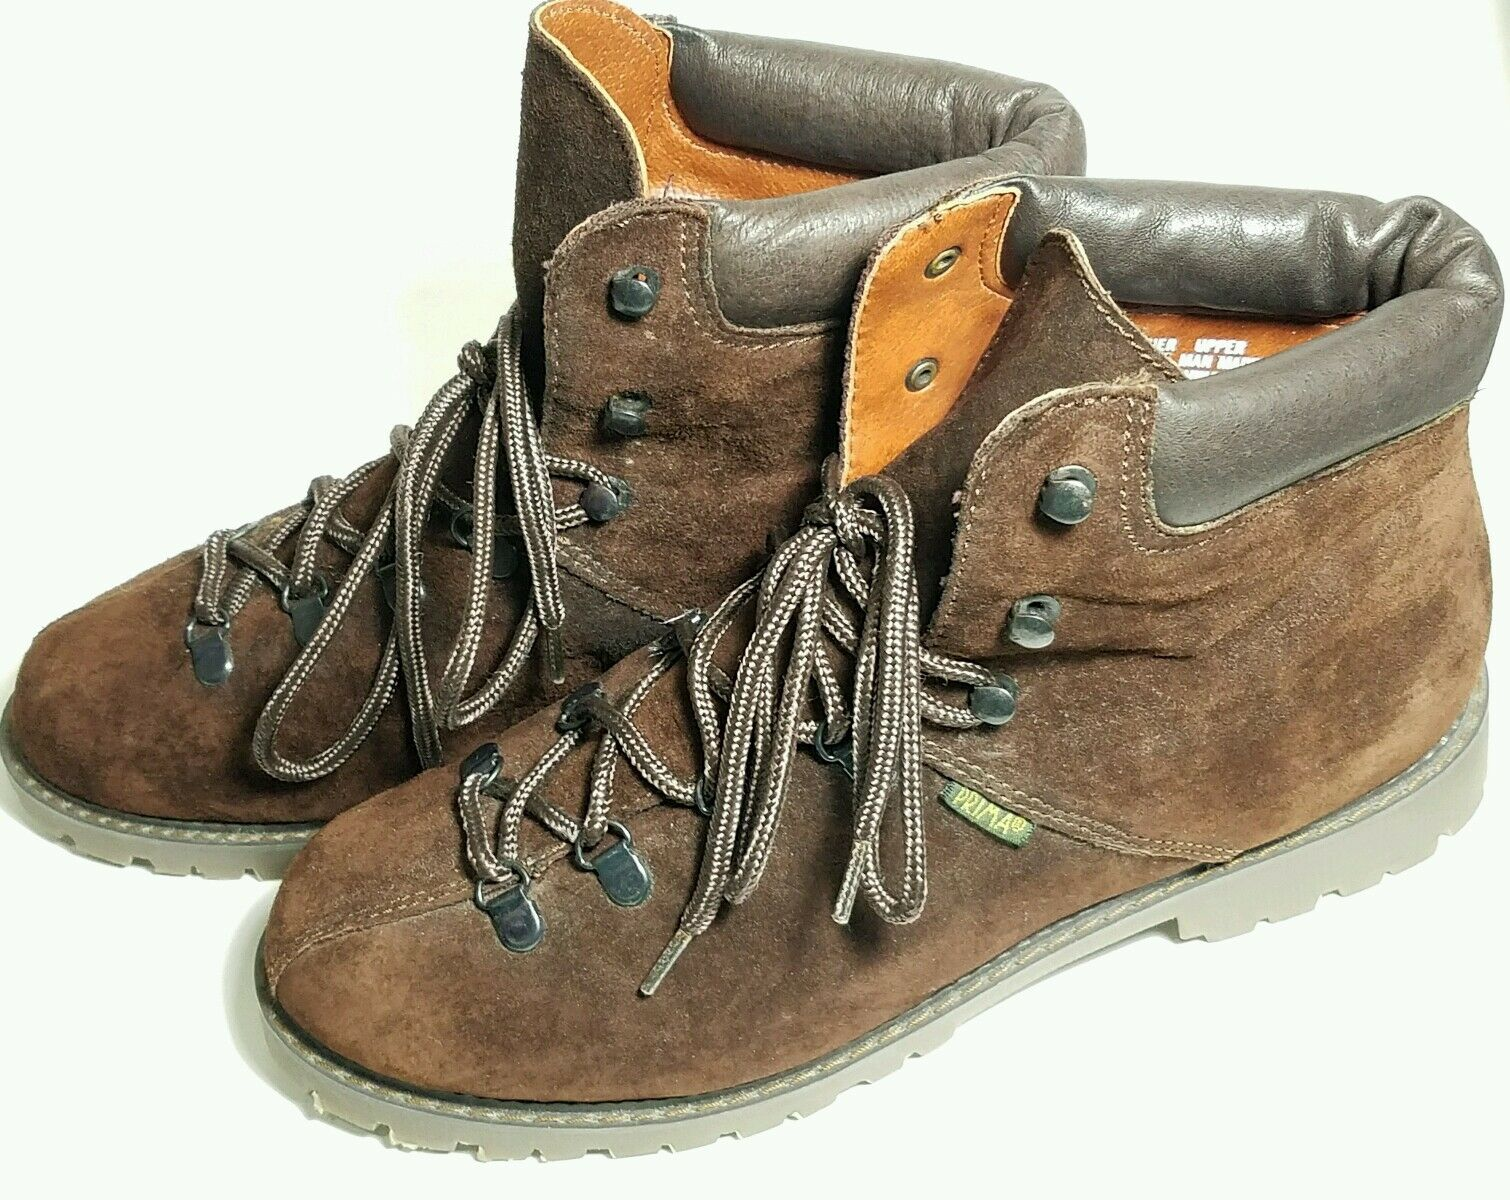 Women's Prima Royale Leather Alps Brown Hiking Ankle Fashion Boots - Sz 10M